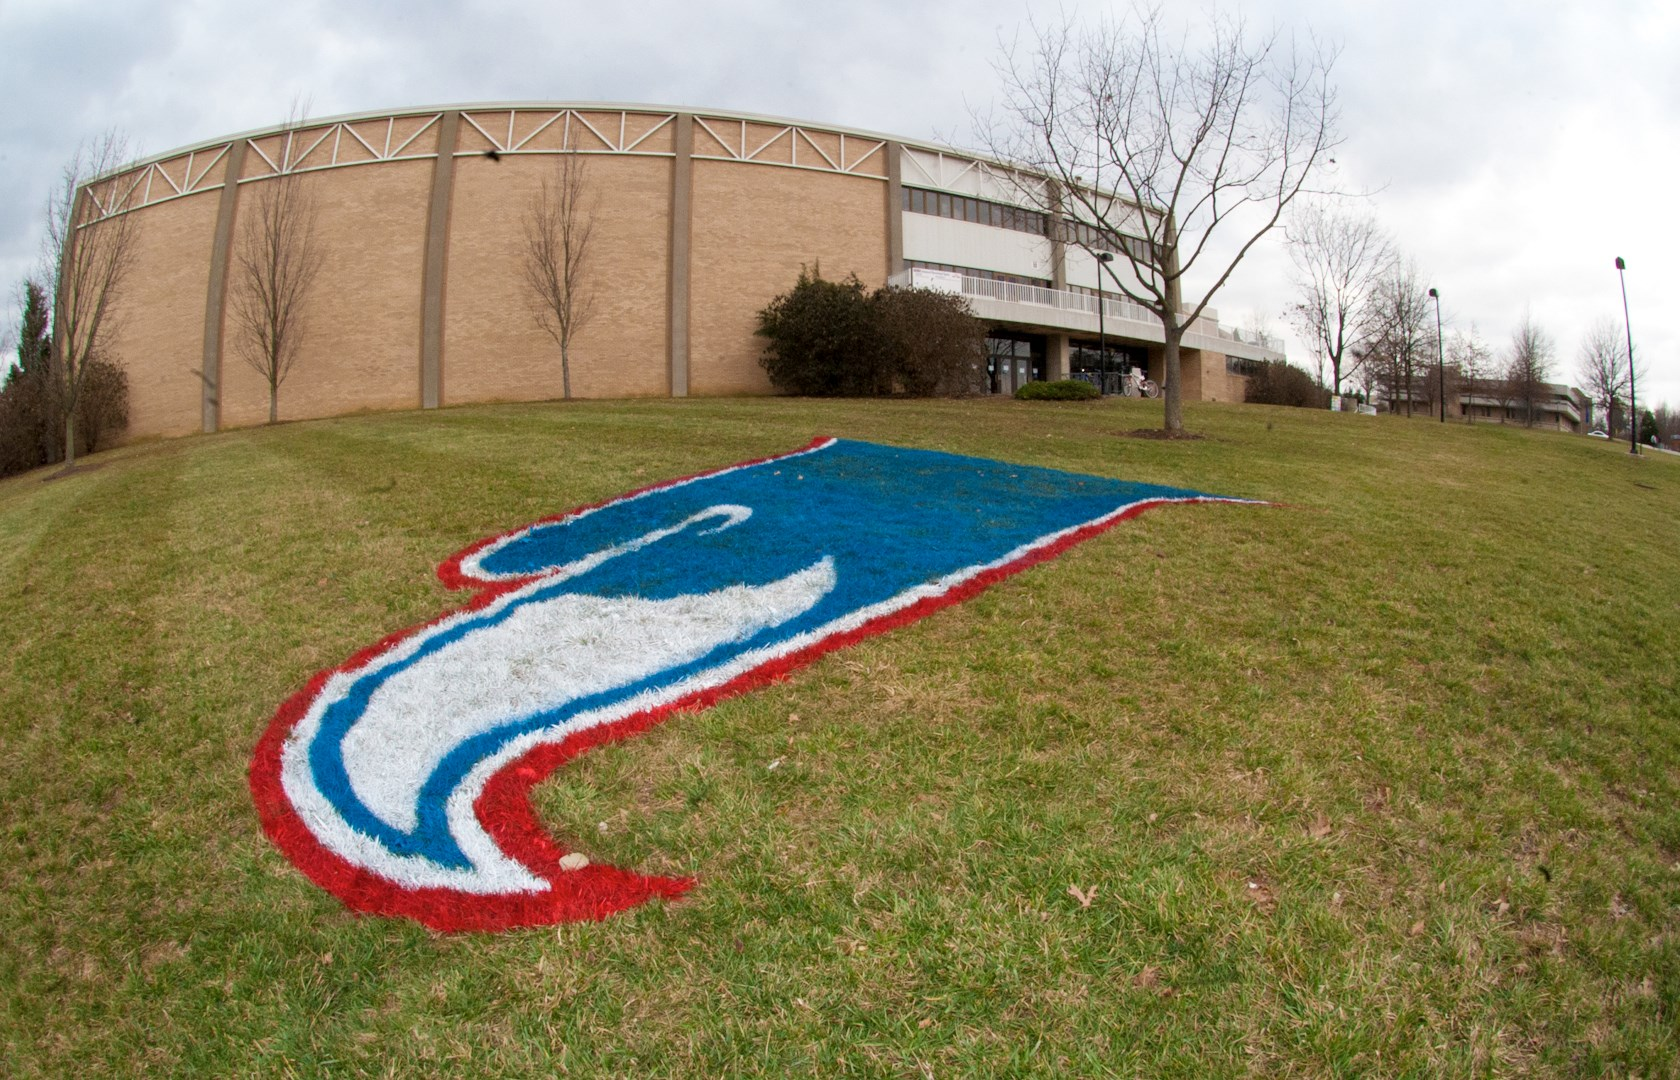 horiz_PAC with Eagle painted on grass